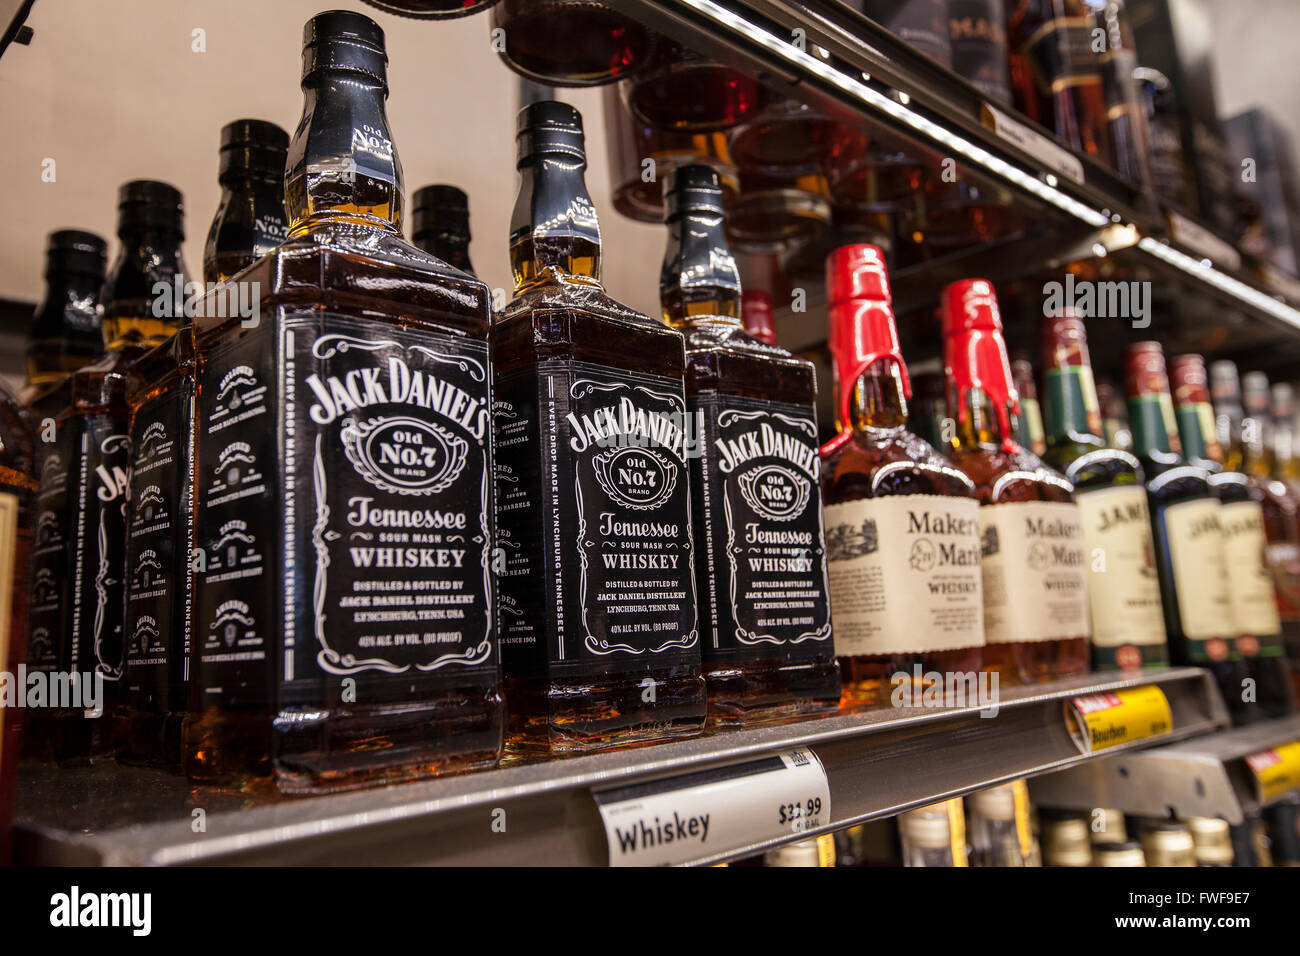 bottles of Jack Daniel's whiskey on a shelf at a store Stock Photo